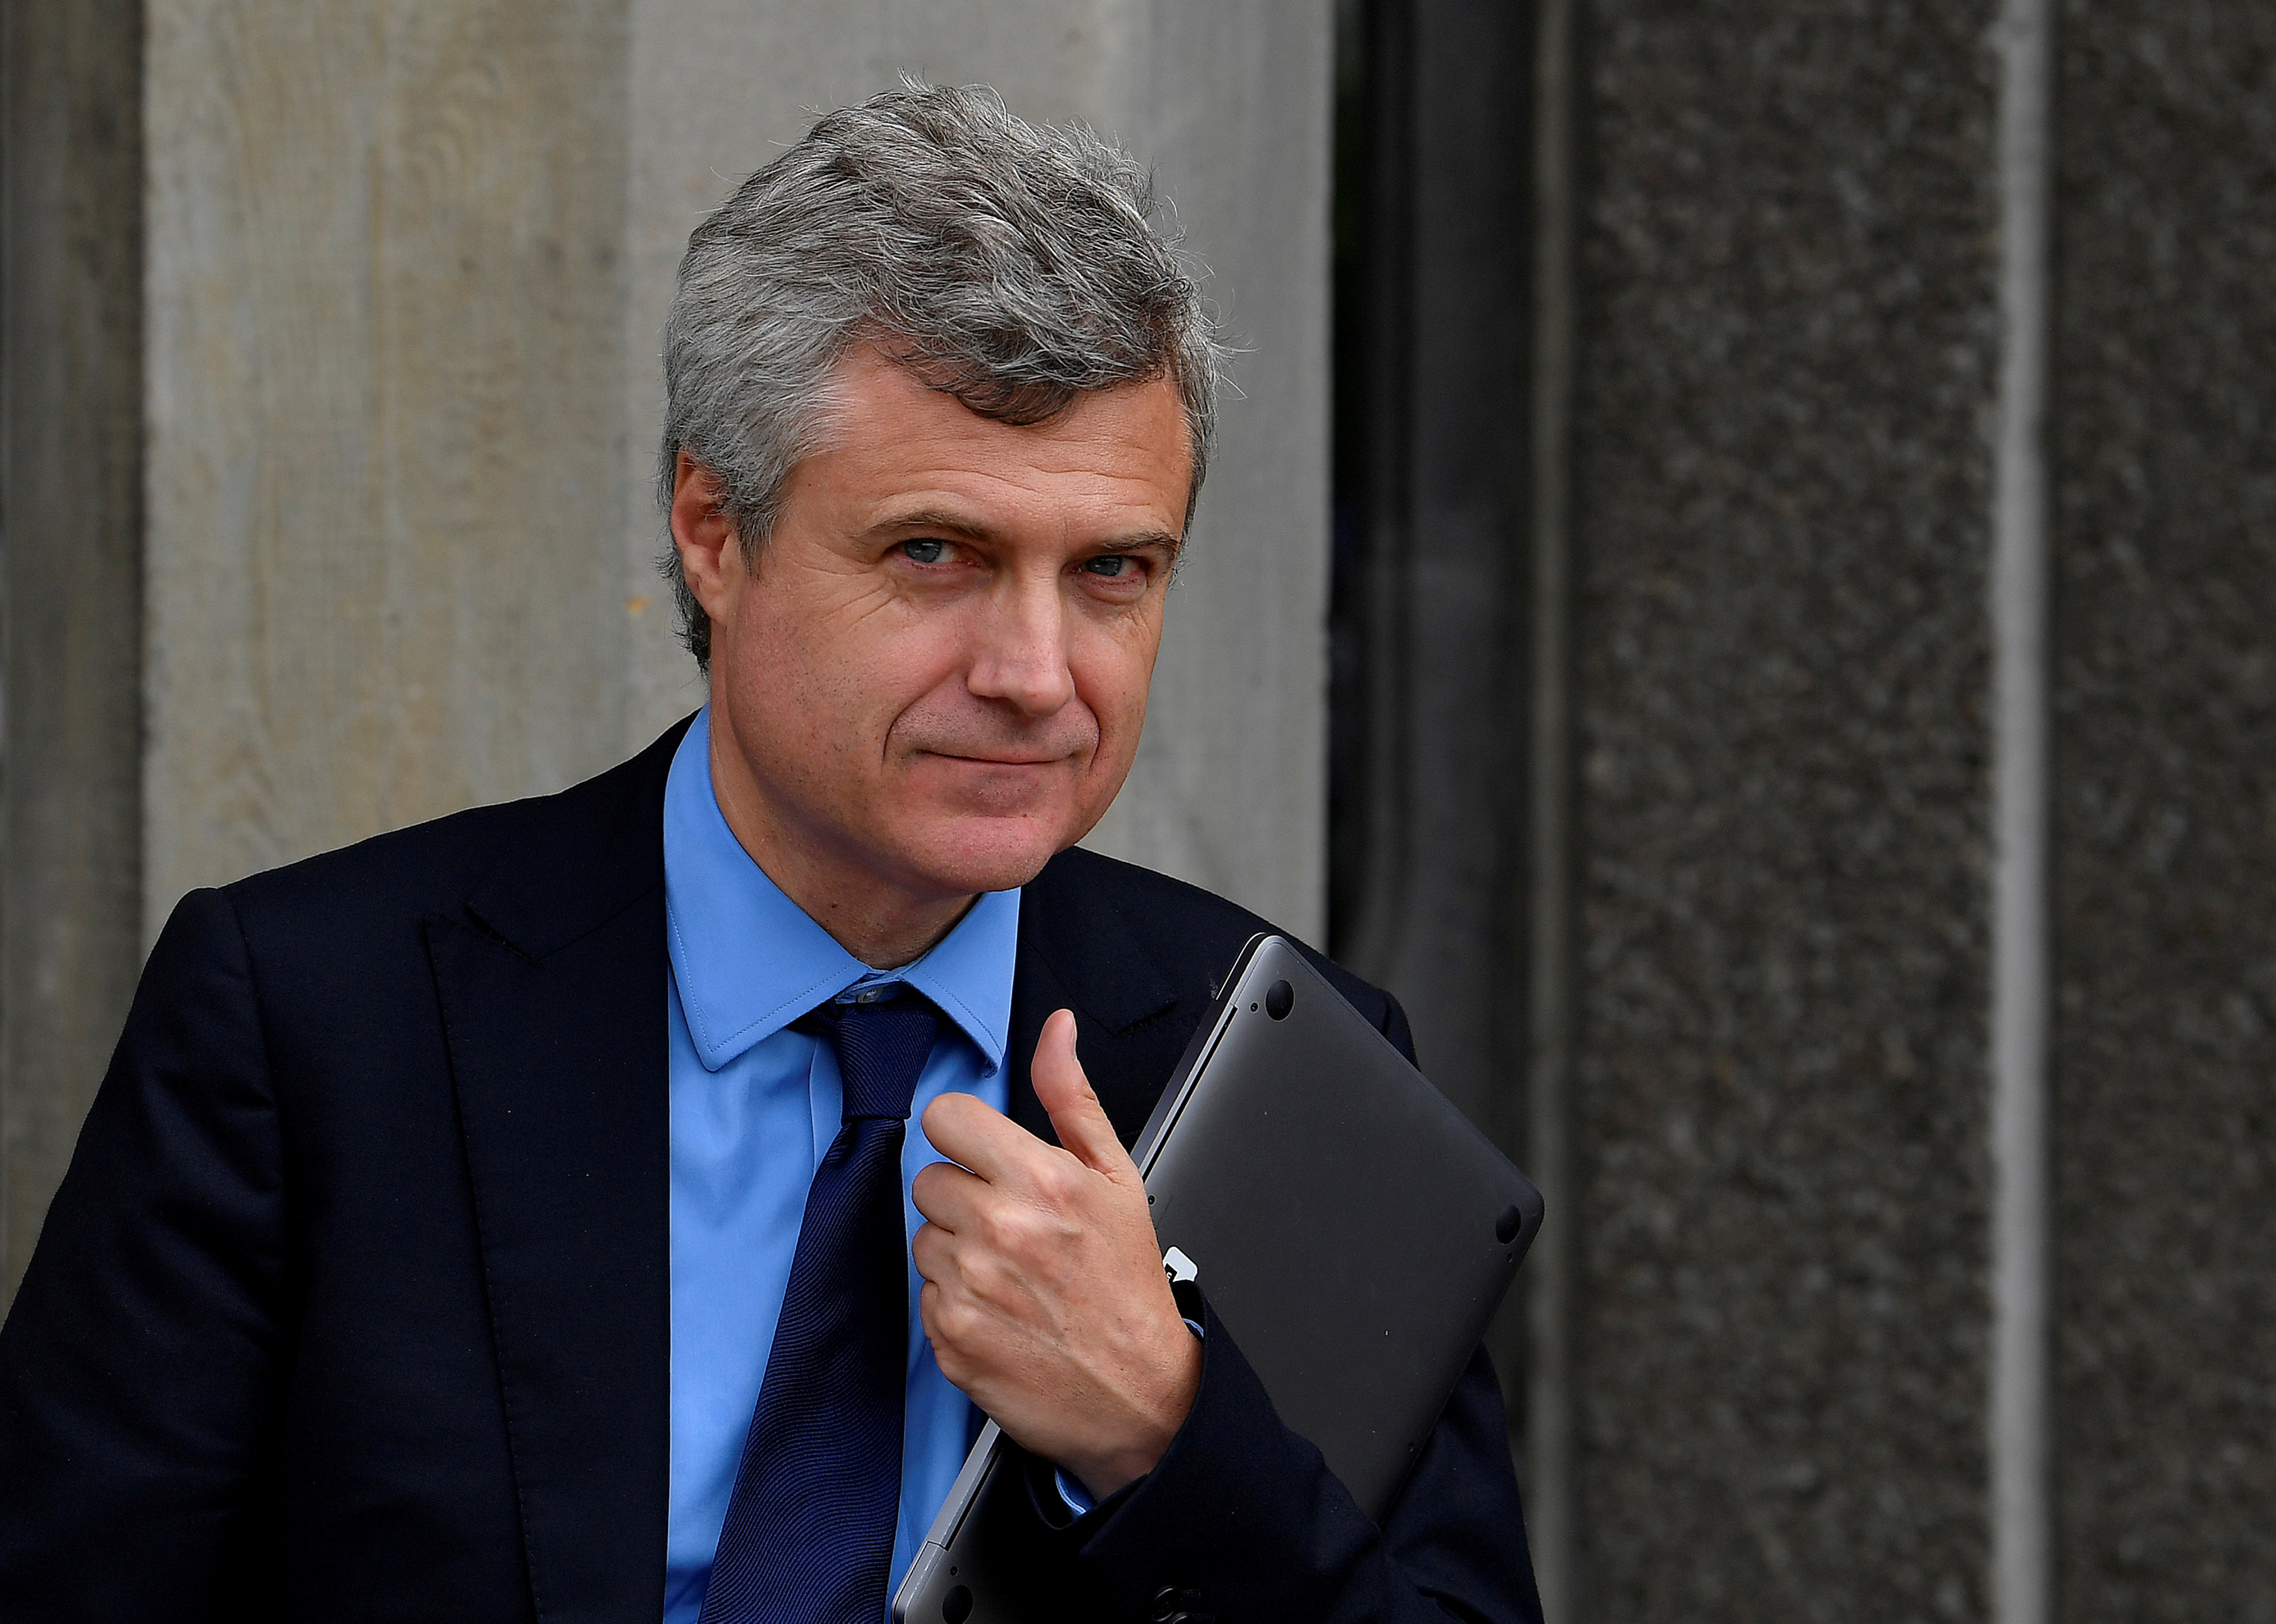 New WPP boss vows to strengthen US business